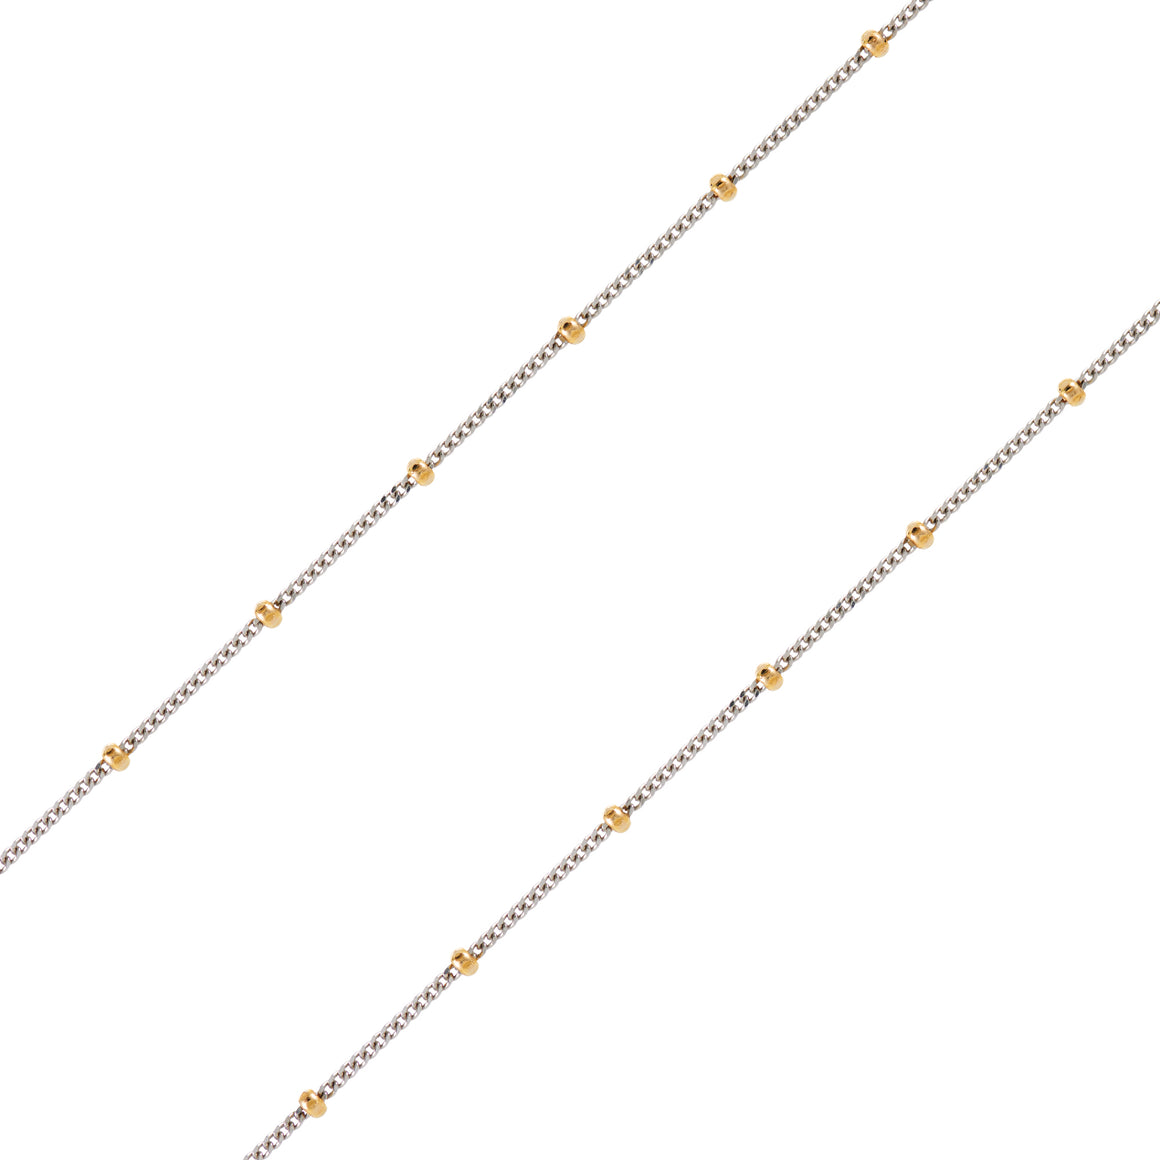 14K MIXED METAL BALL CHAIN